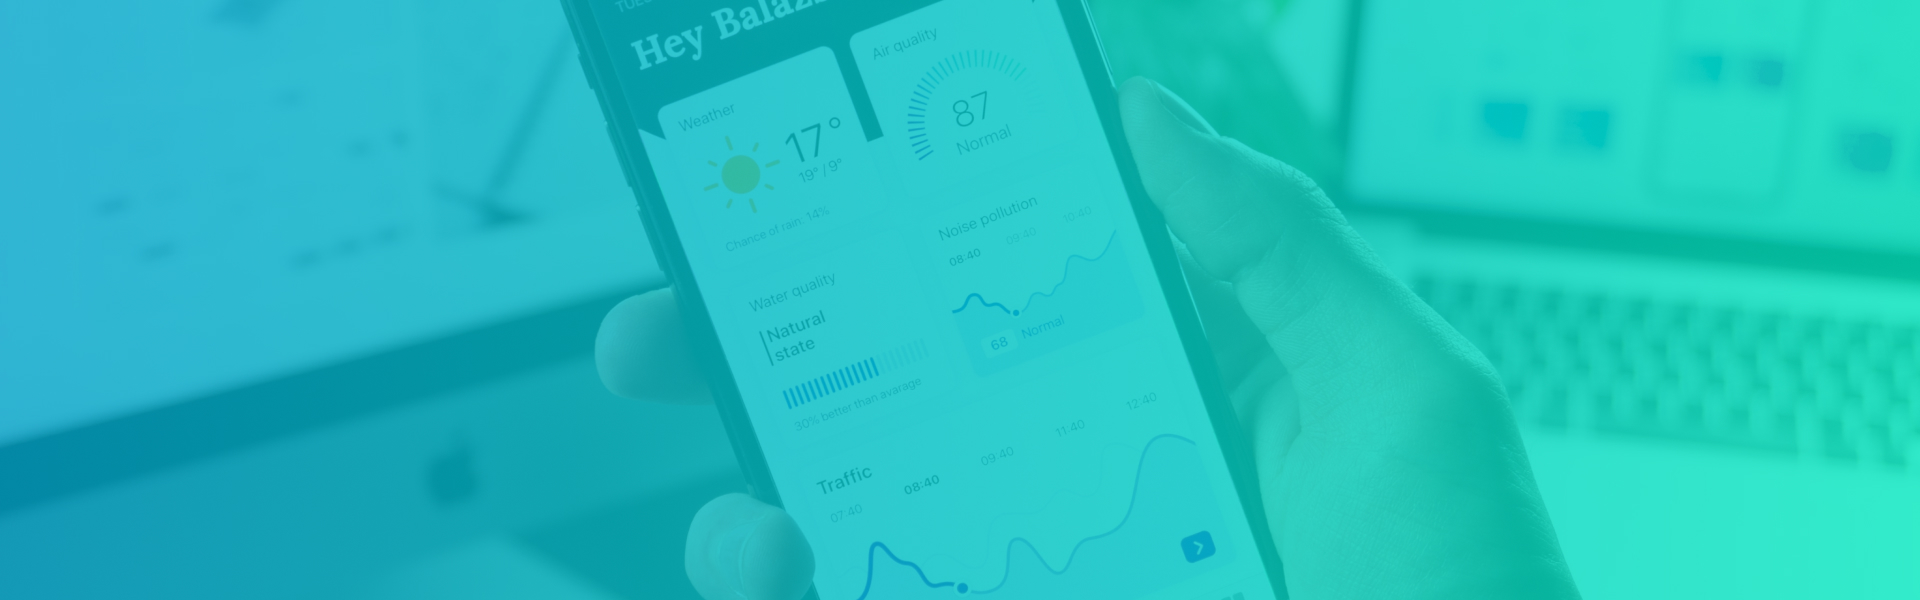 TOP-5 features of a perfect mobile application in 2020